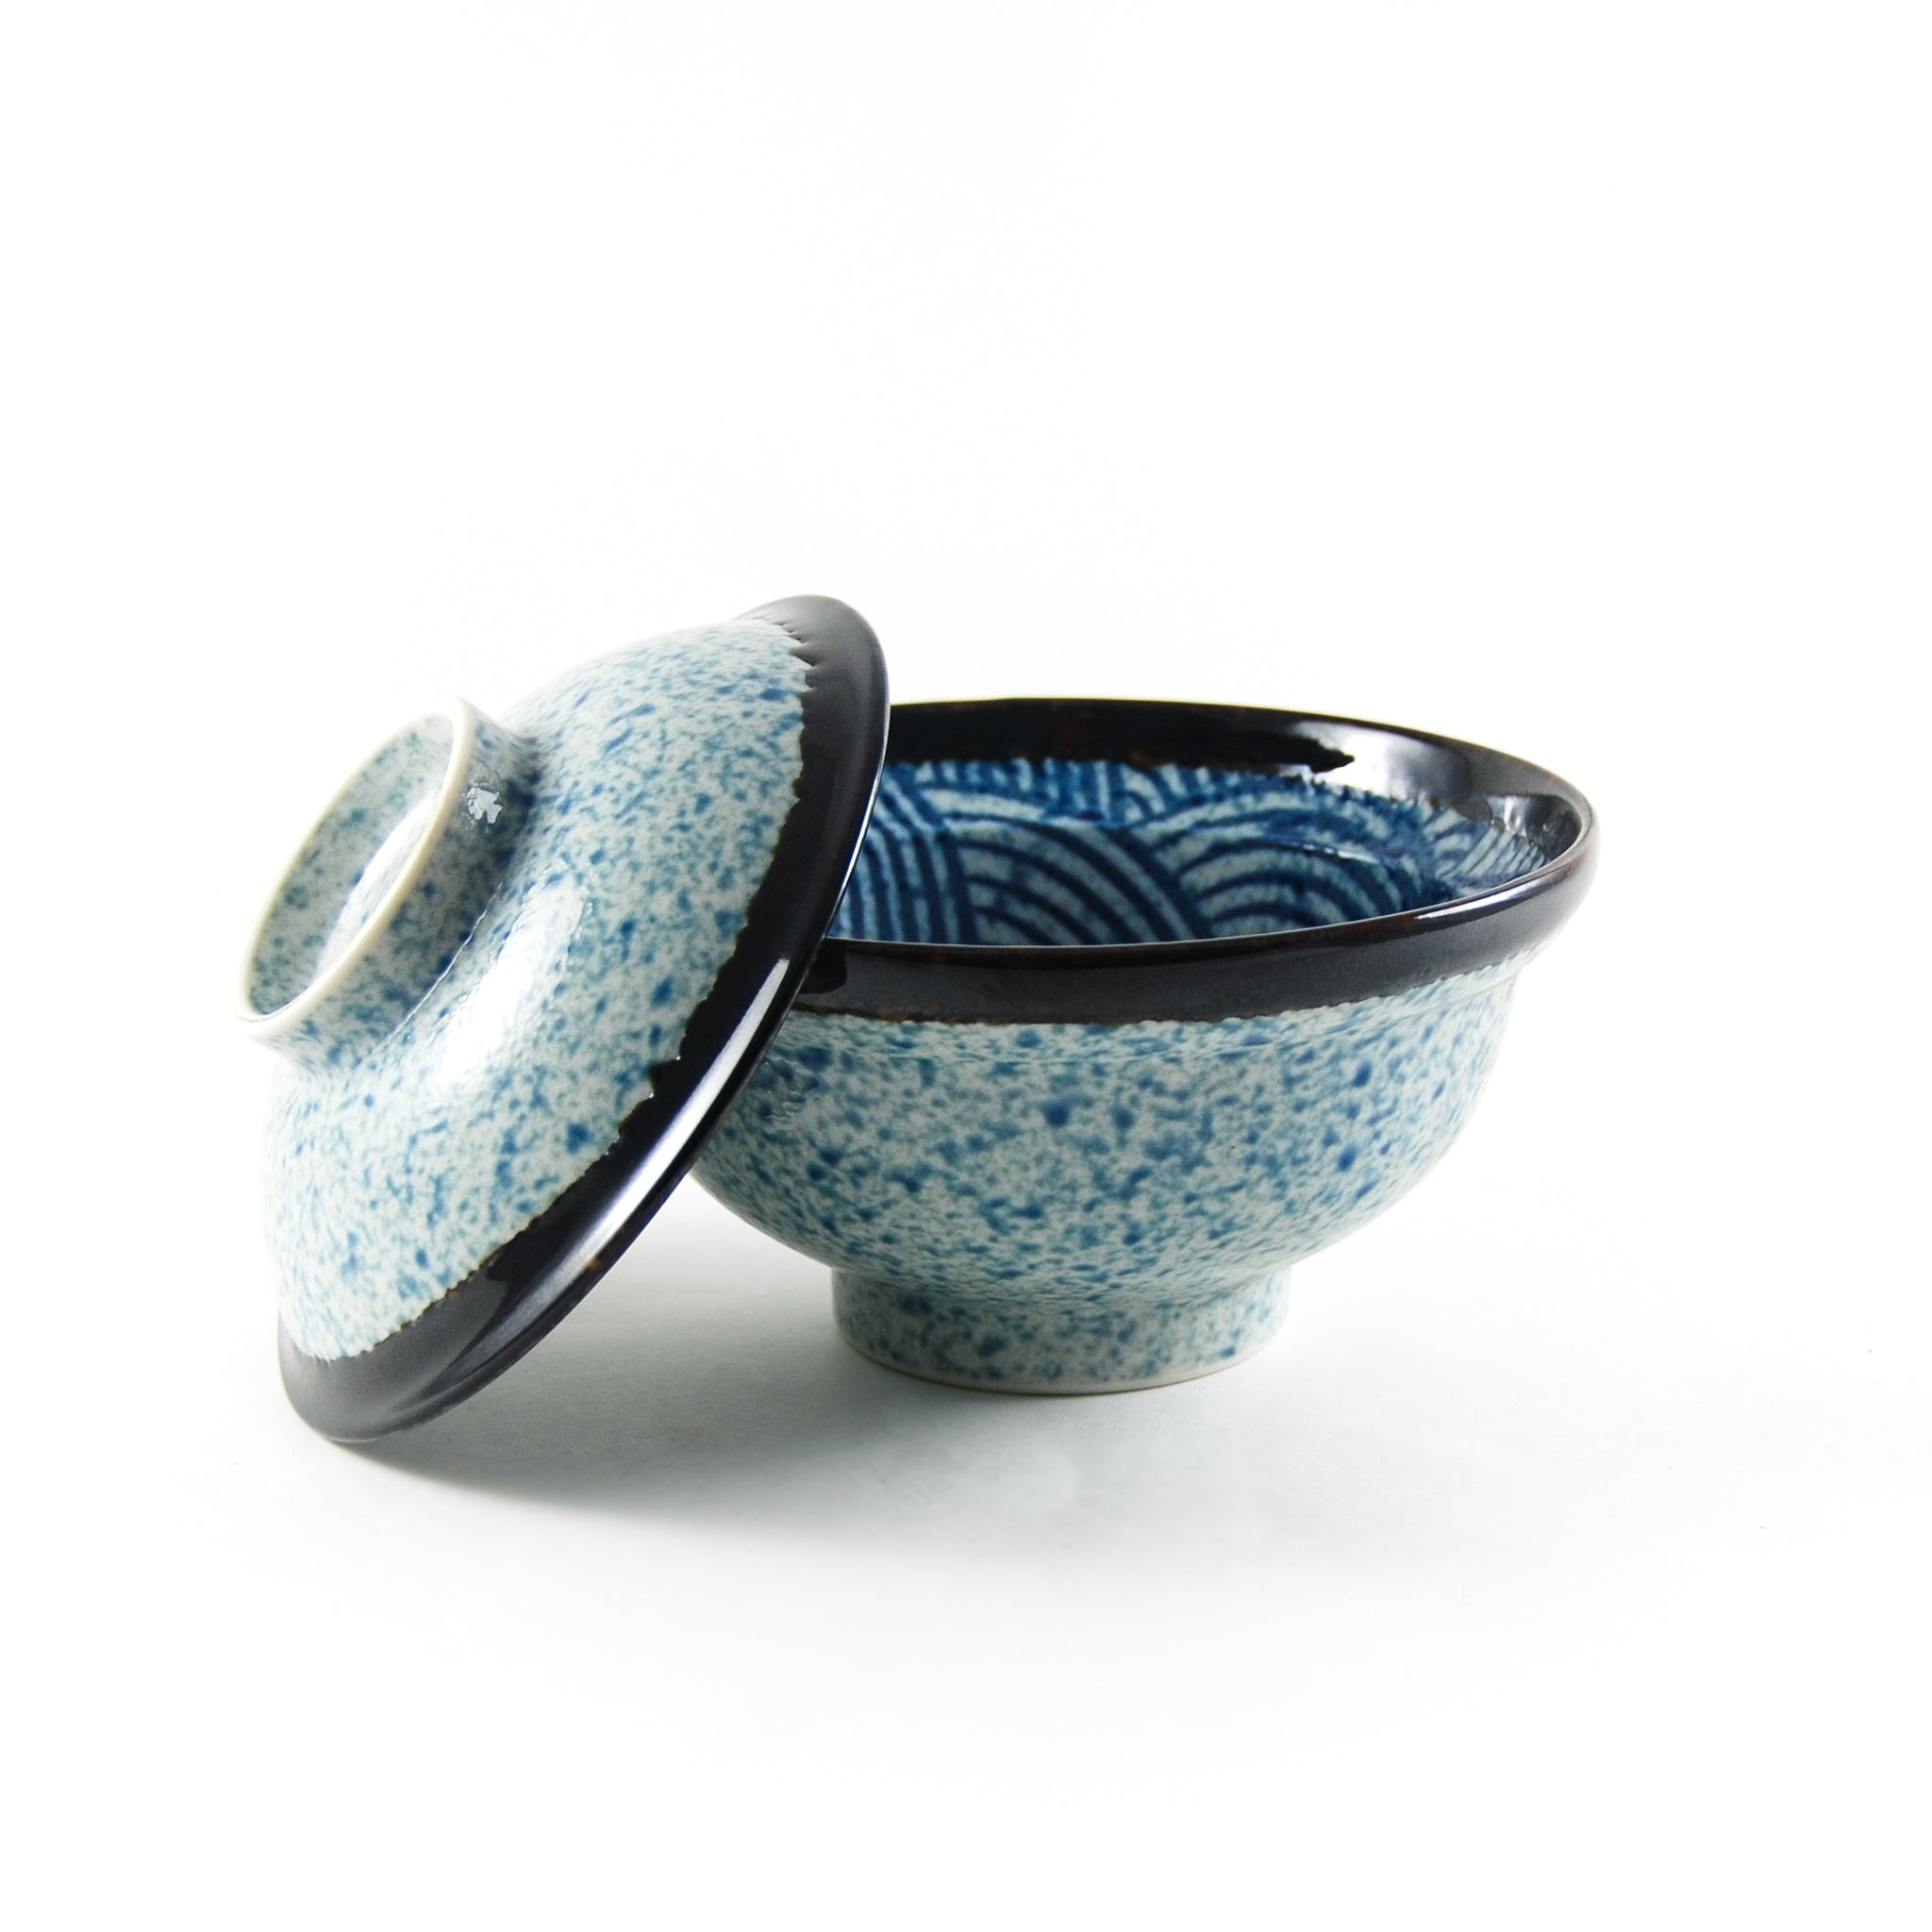 Kiji Stoneware & Ceramics Blue Wave Covered Bowl Tableware Japanese Tableware